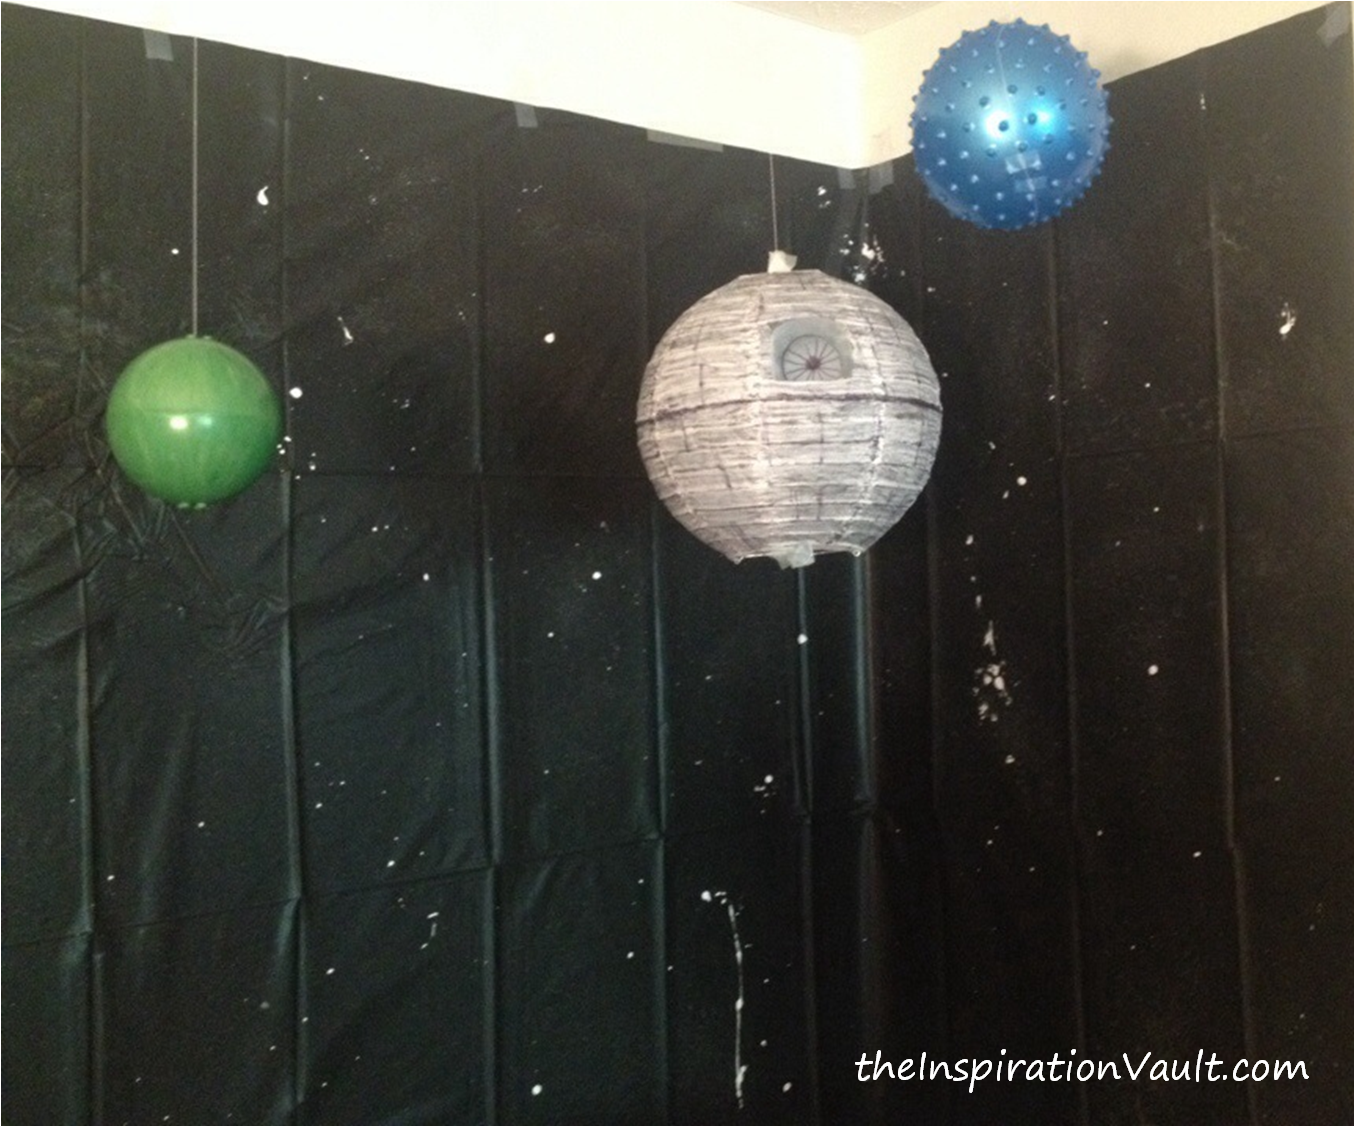 star wars themed diy party decorations - Star Wars Decorations